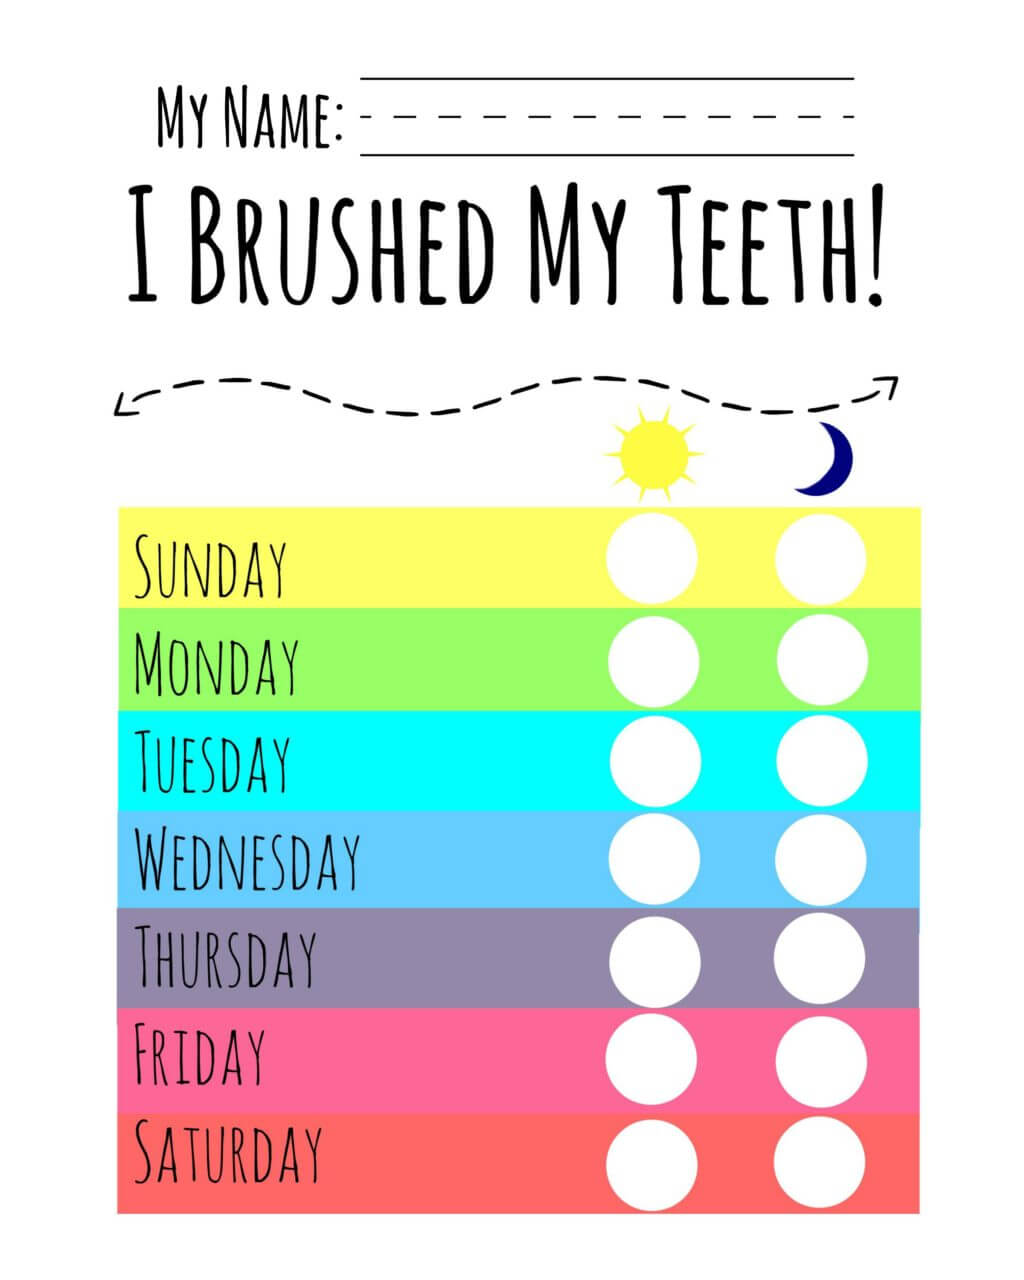 Simple Tips To Healthy Smiles With A Free Printable